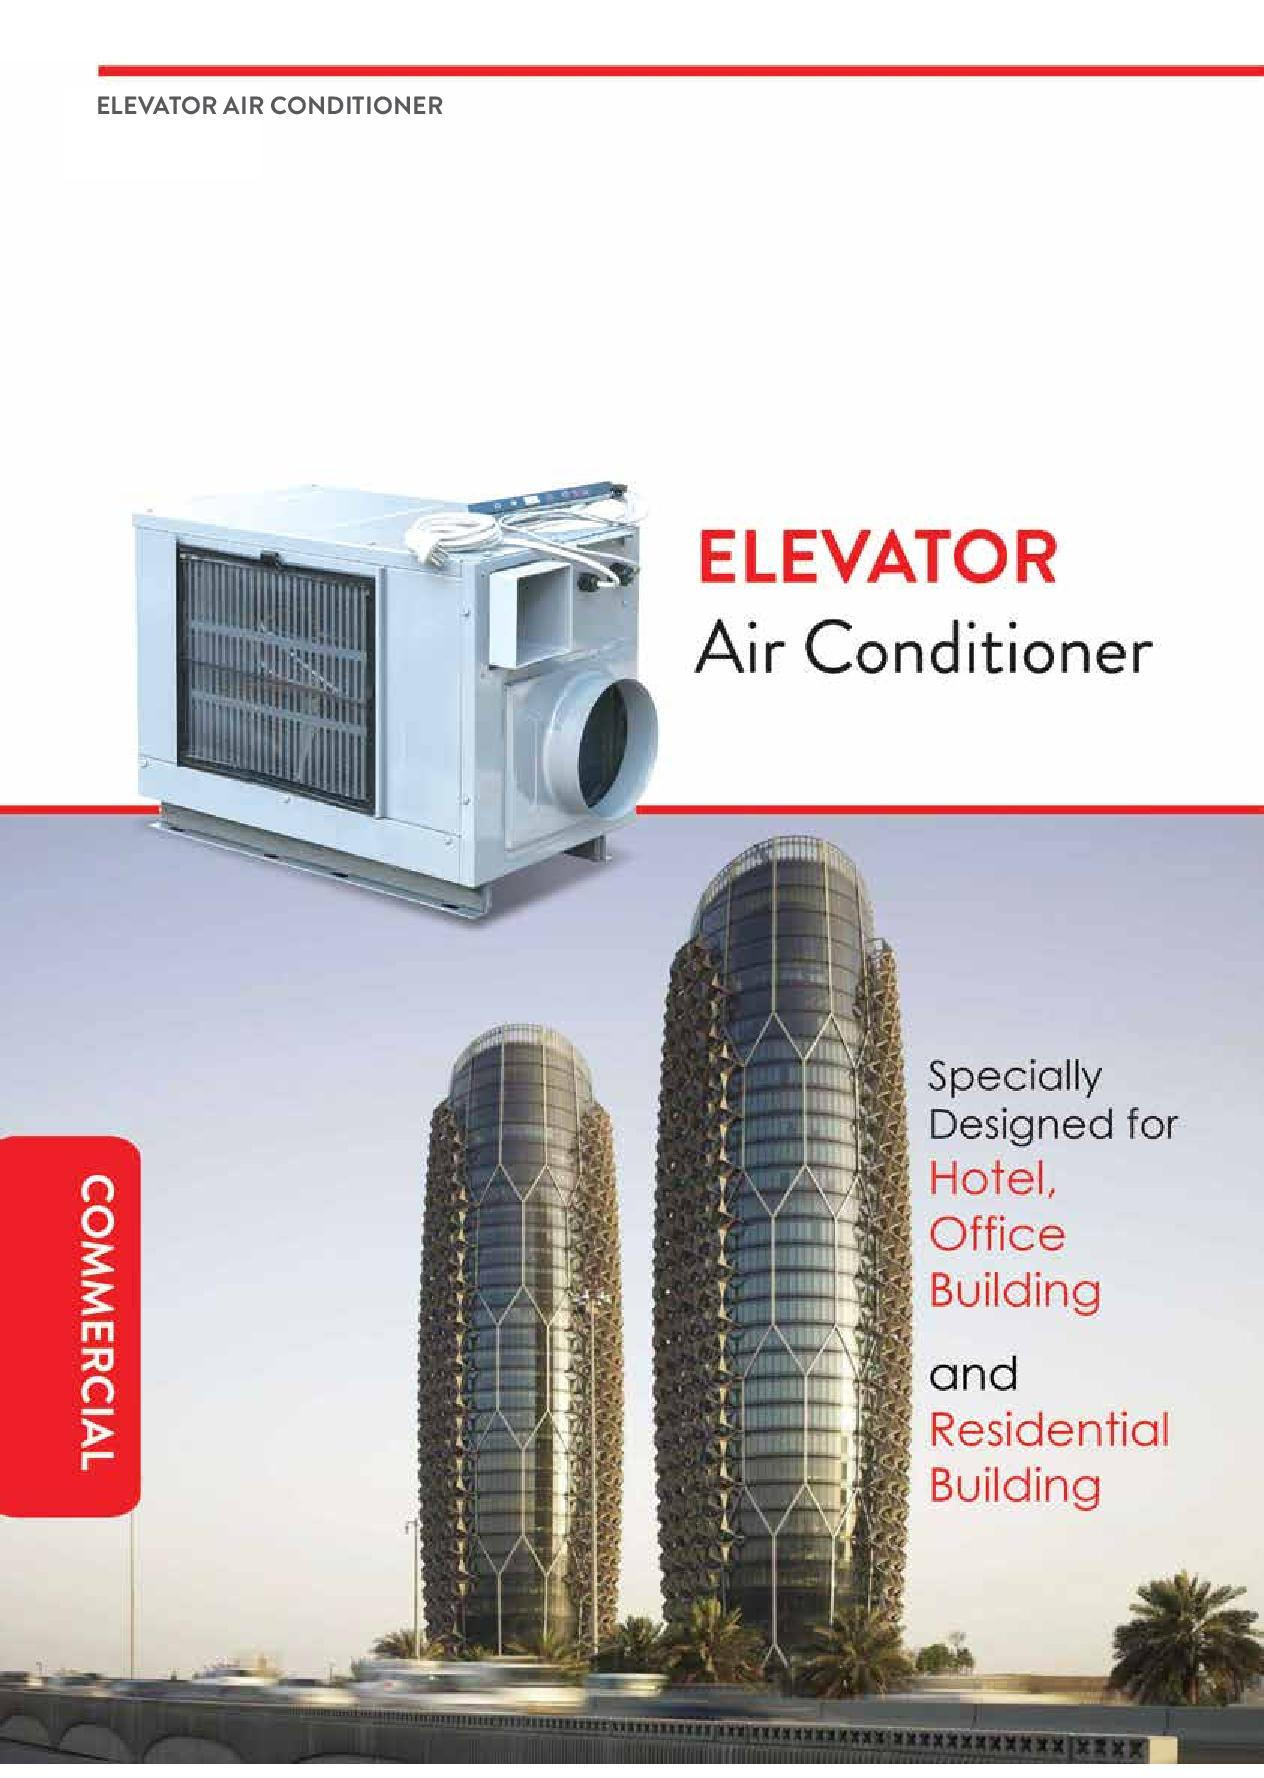 Gree Elevator Aircon 1 5HP (GDT 35)   SEAGULL MY : Aircon Supplier Malaysia